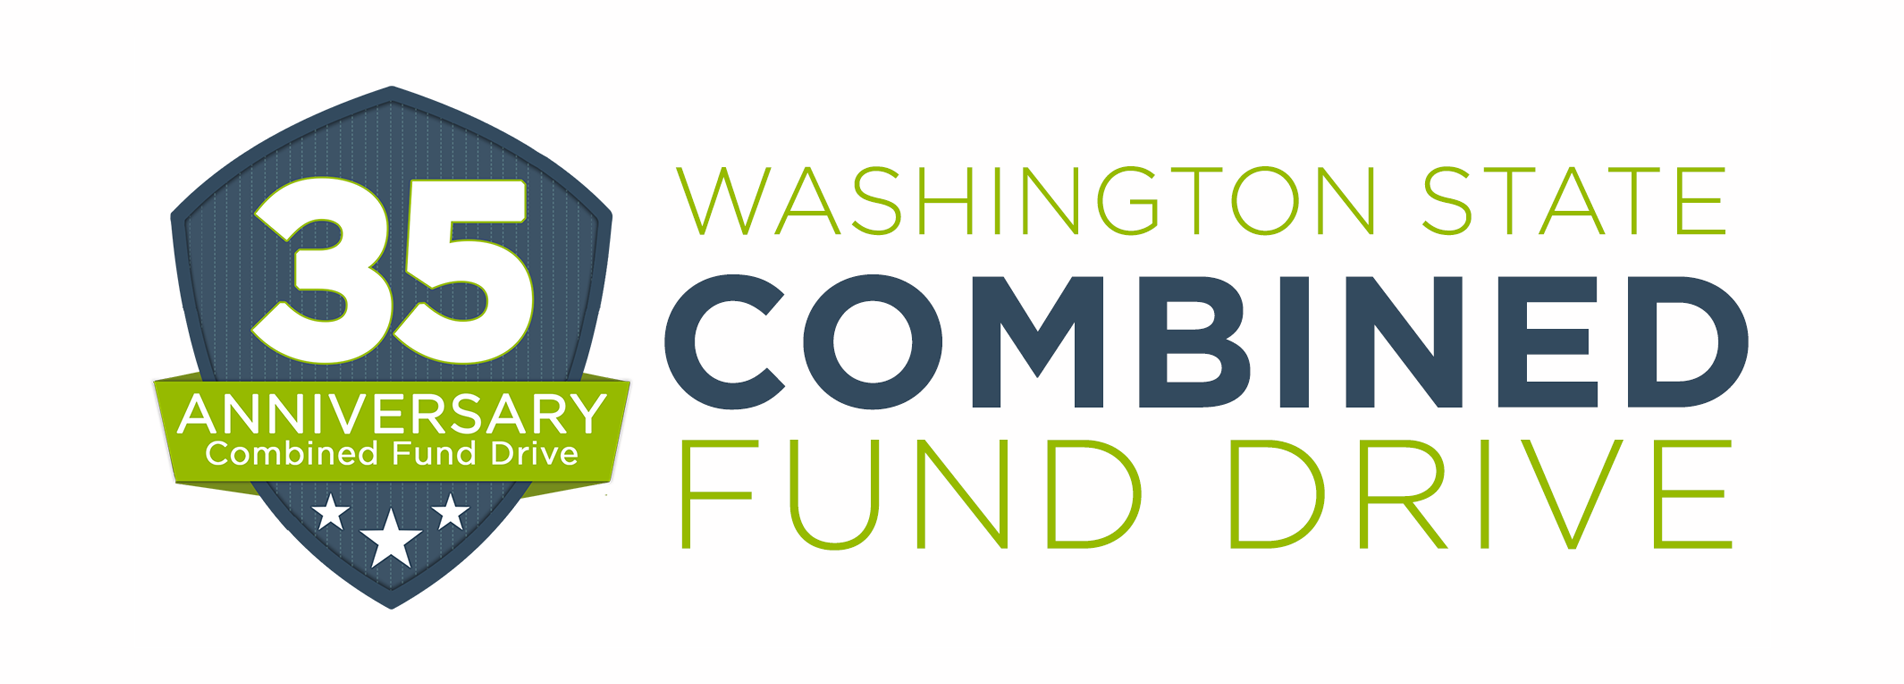 Washington State Combined Fund Drive logo